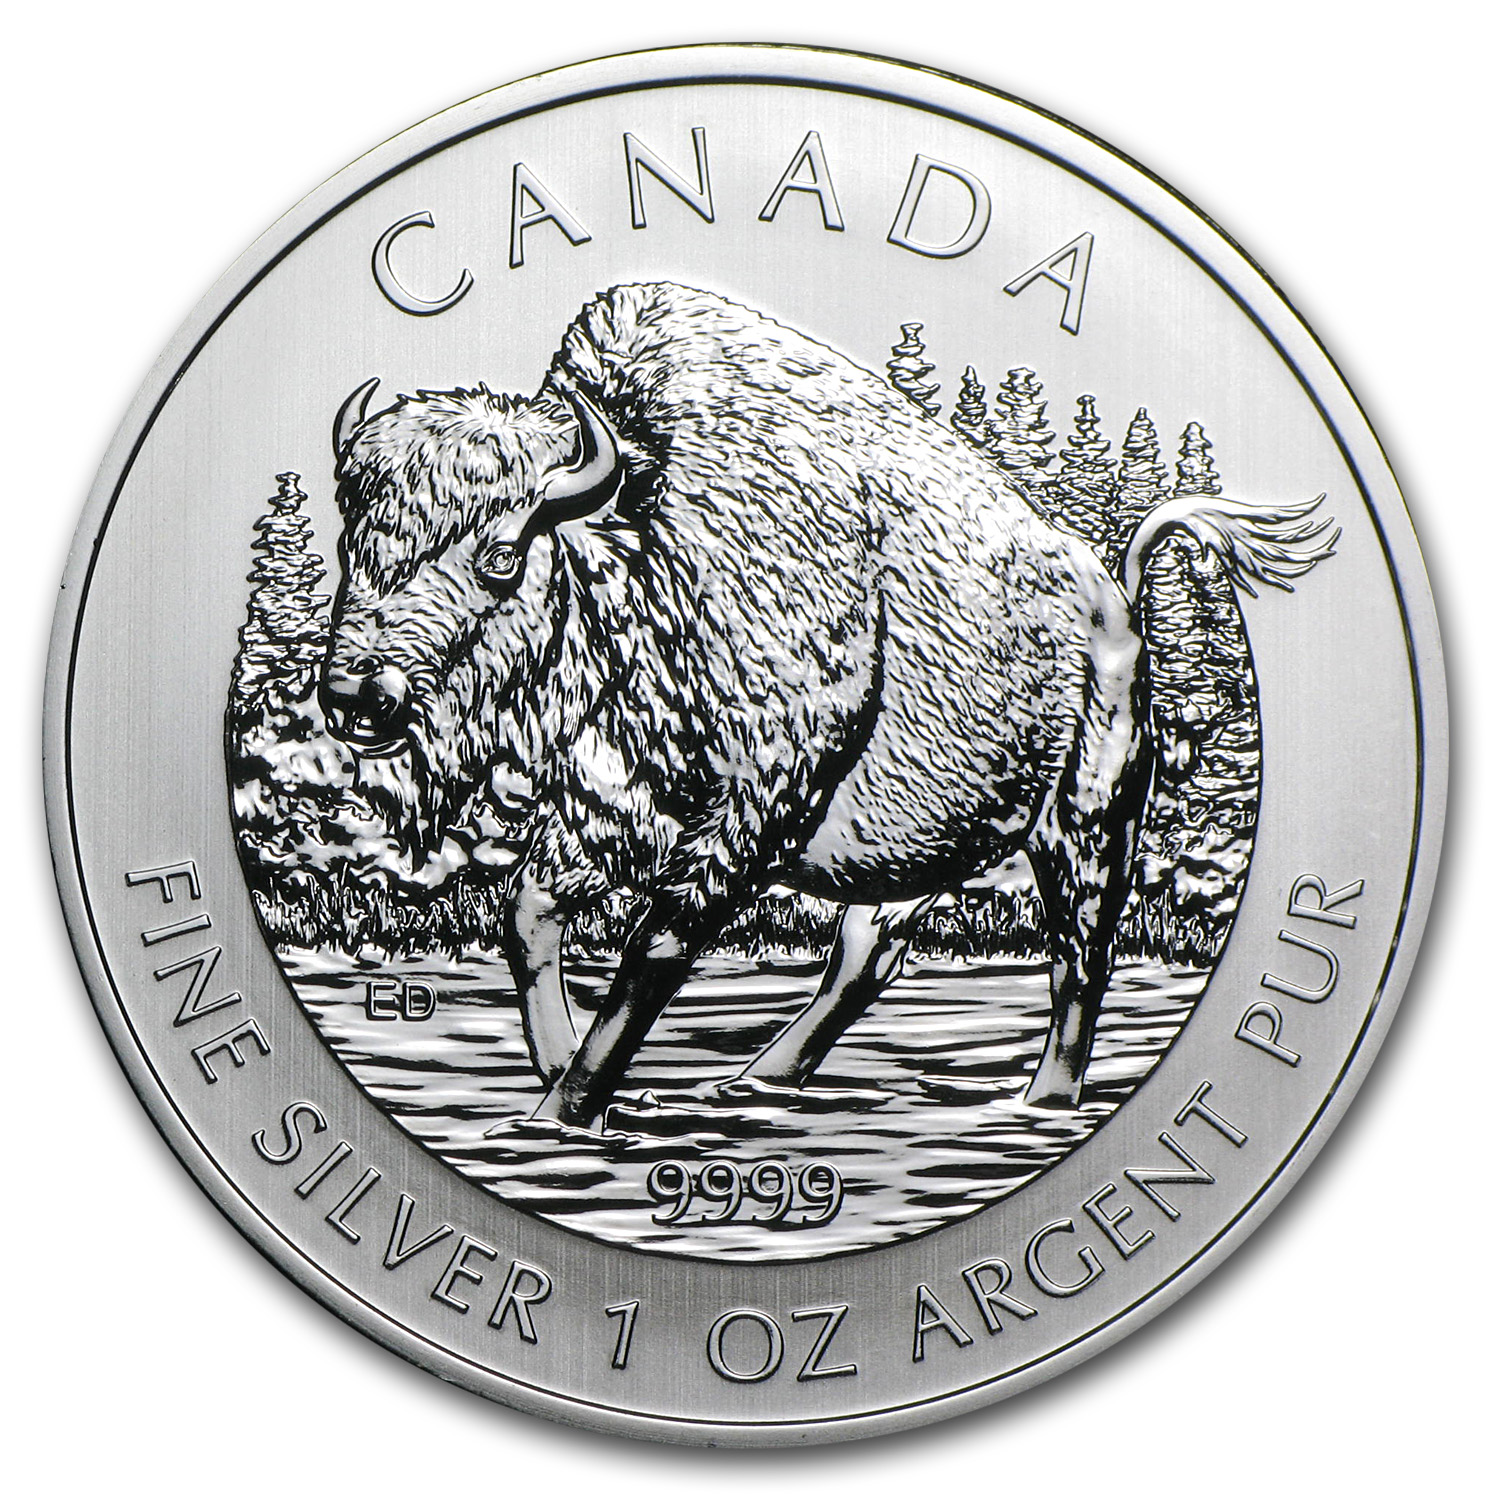 2013 1 oz Silver Canadian Wildlife Series Wood Bison